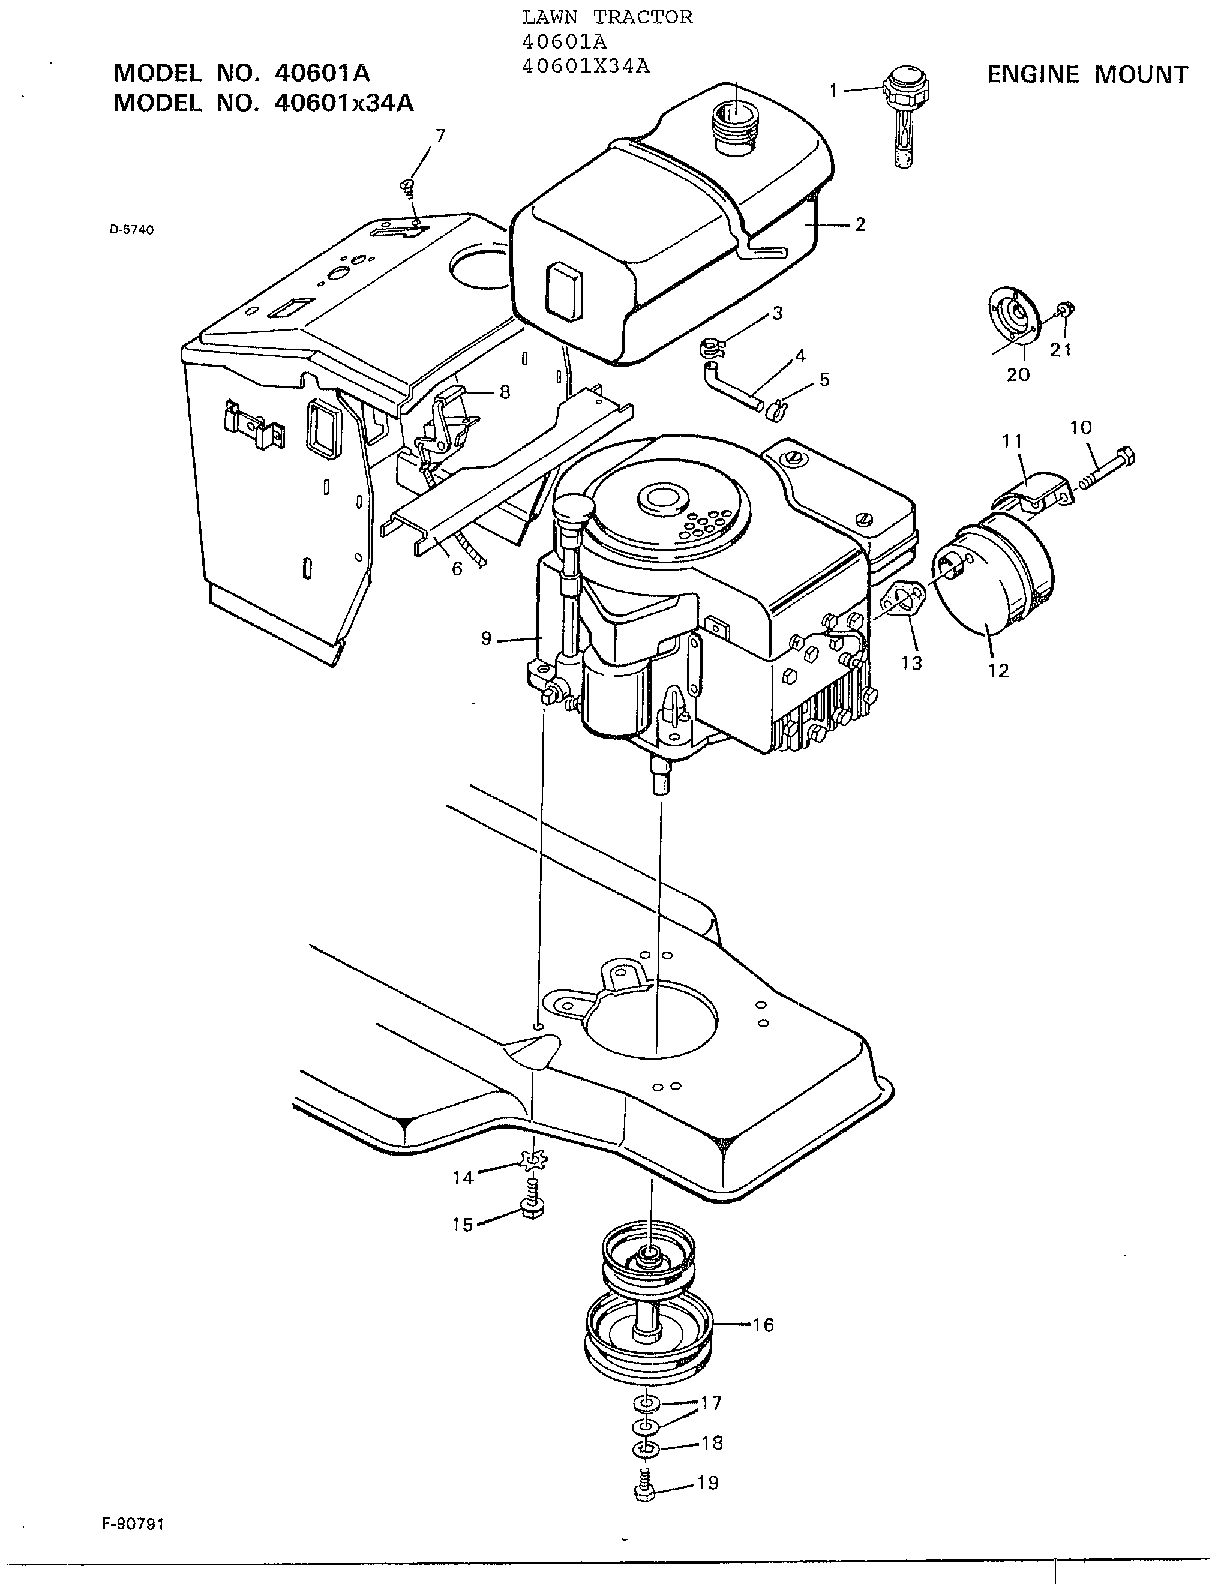 ENGINE MOUNT Diagram & Parts List for Model 40601A Murray